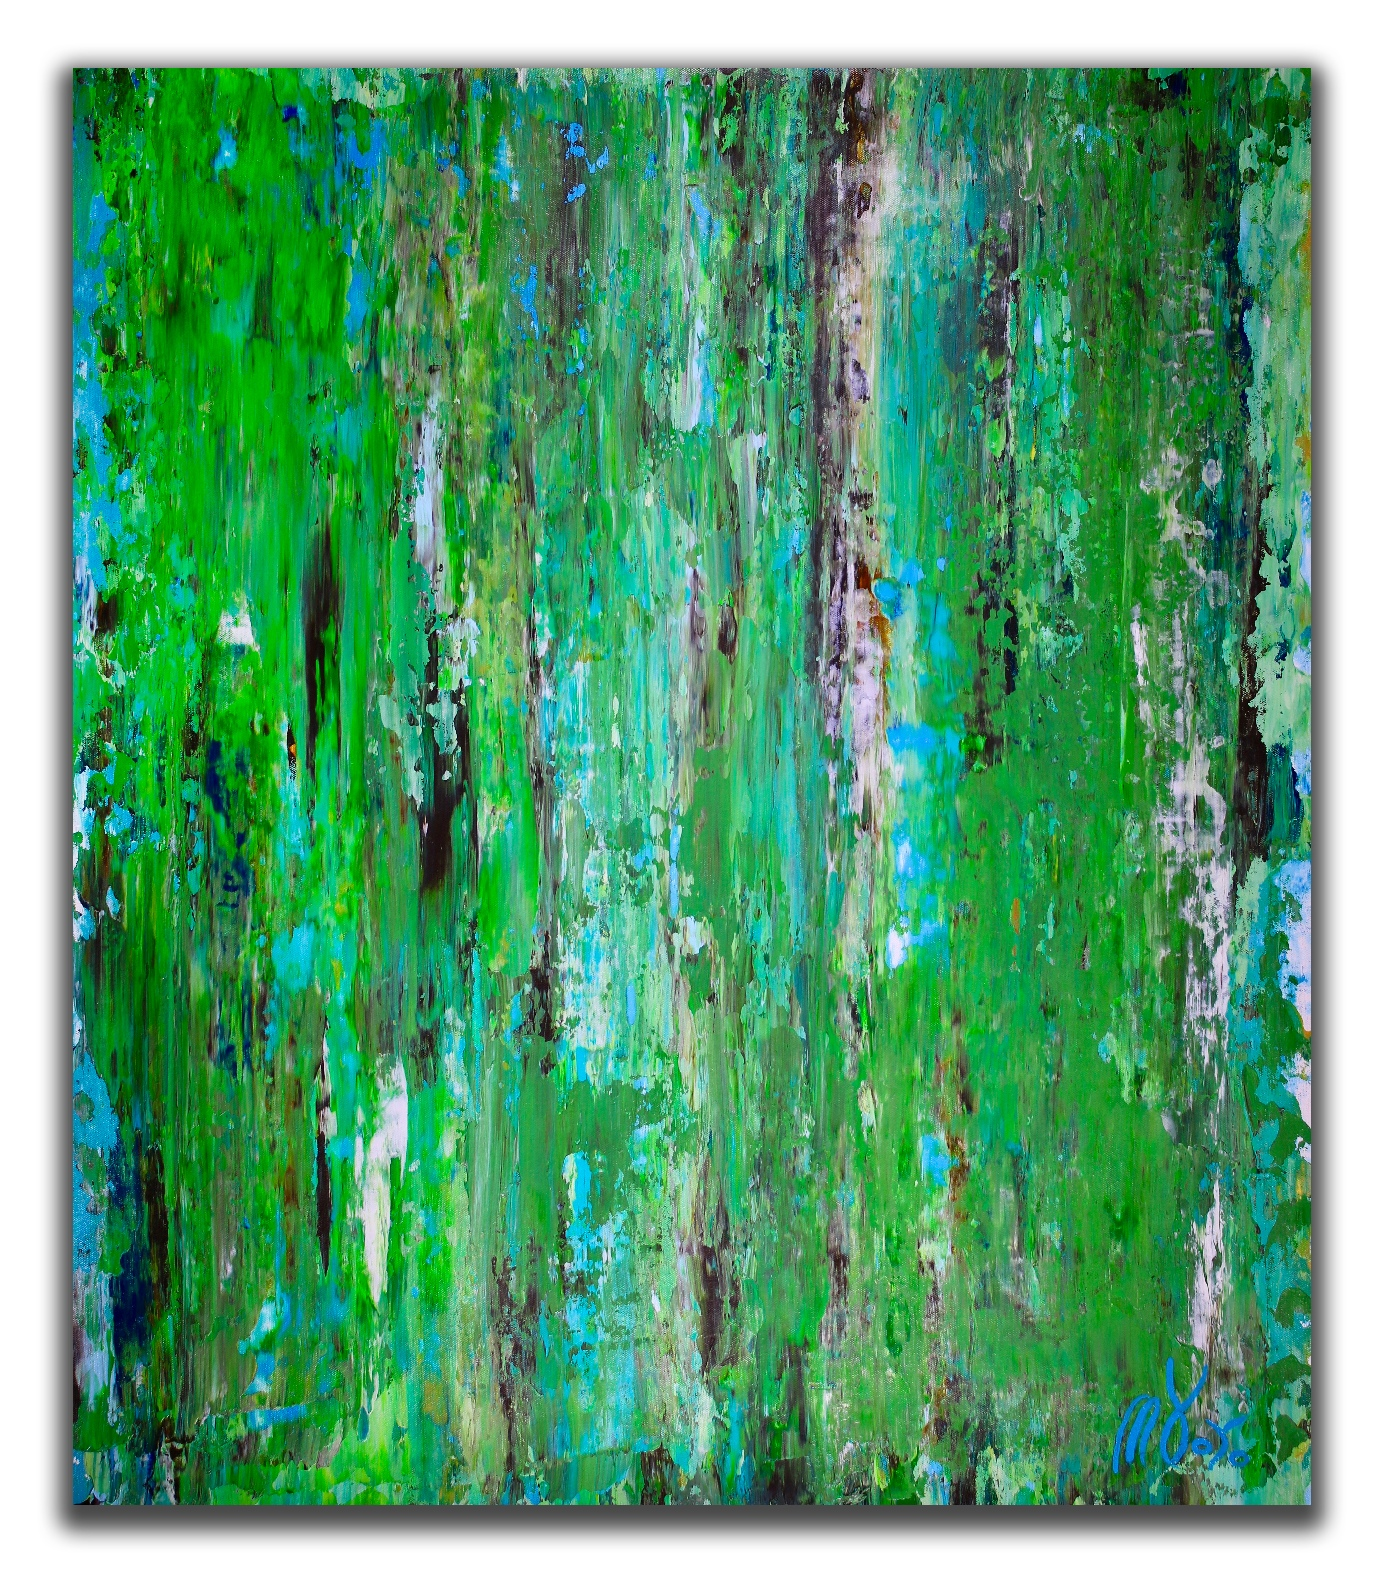 Pastures in late spring (2018) Expressionistic abstract Acrylic painting by Nestor Toro